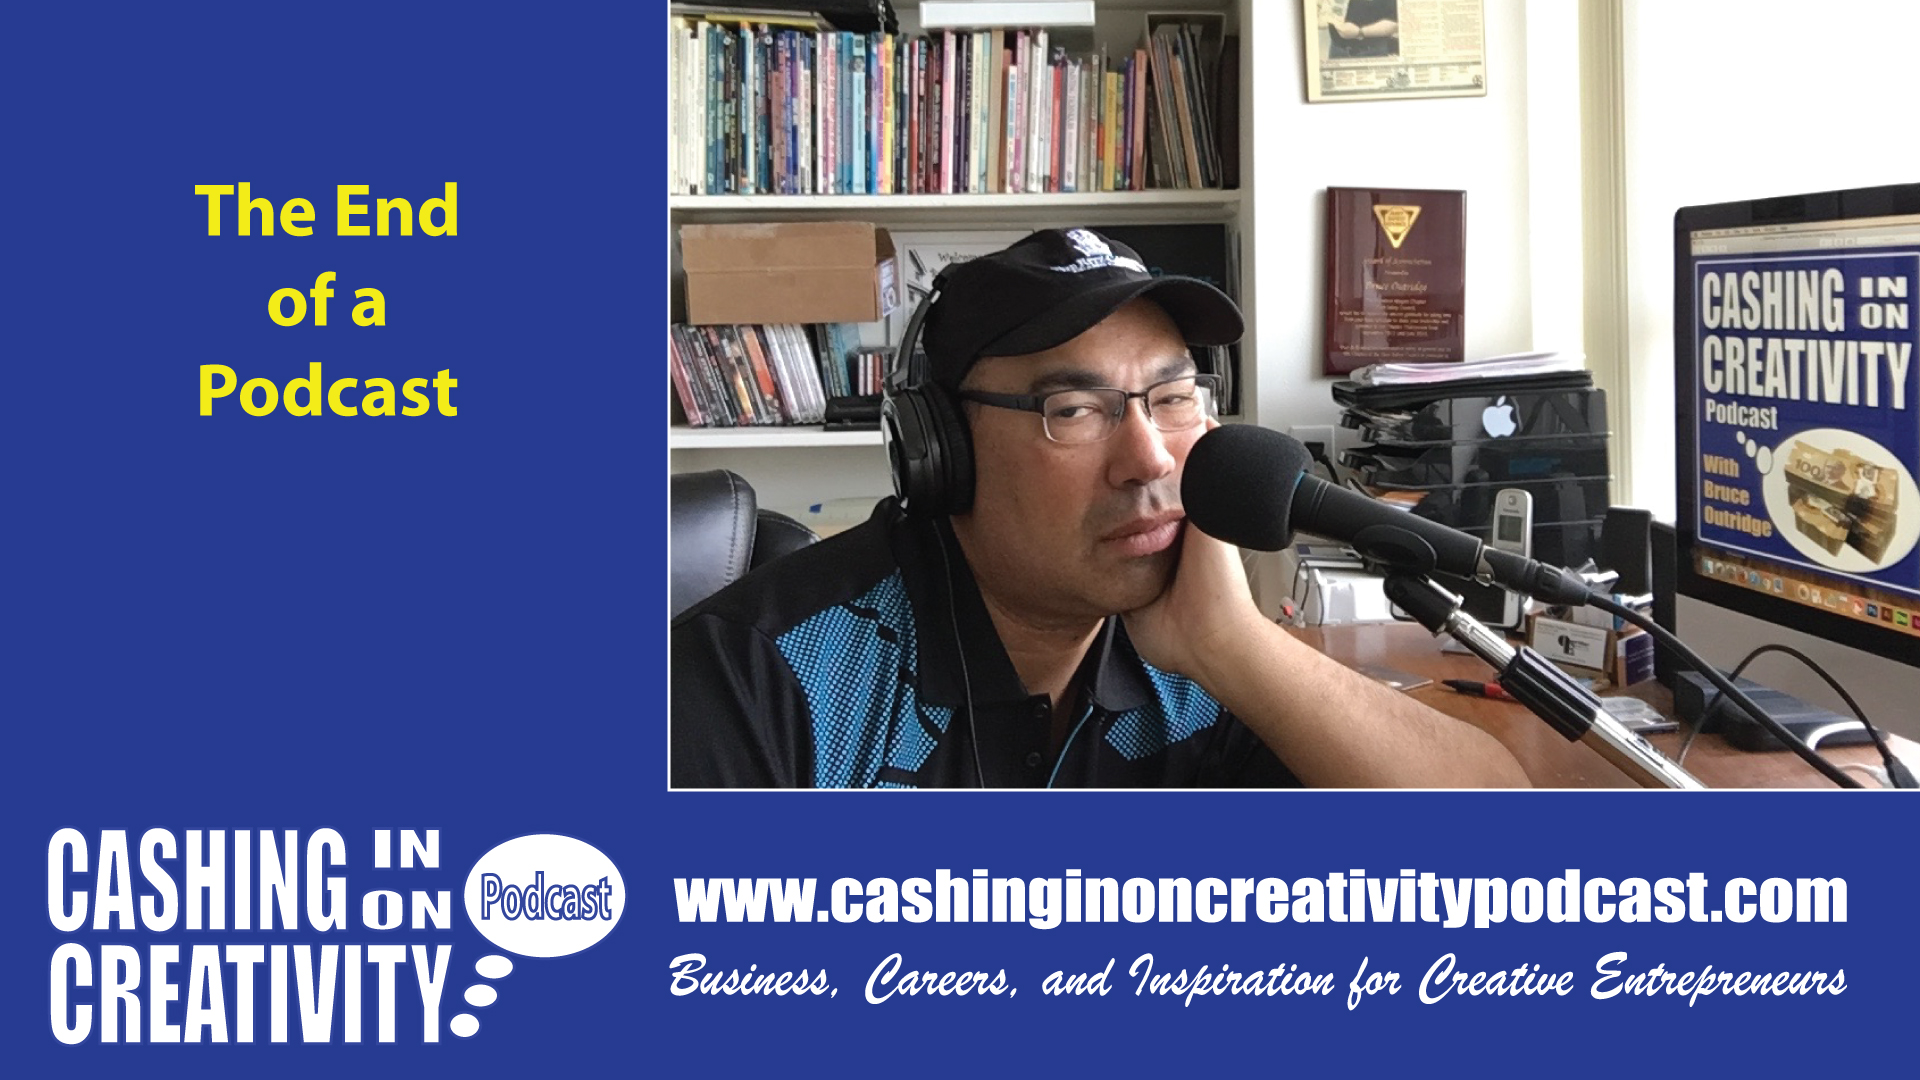 CC268 Cashing in on Creativity Podcast Publishes Last Episode